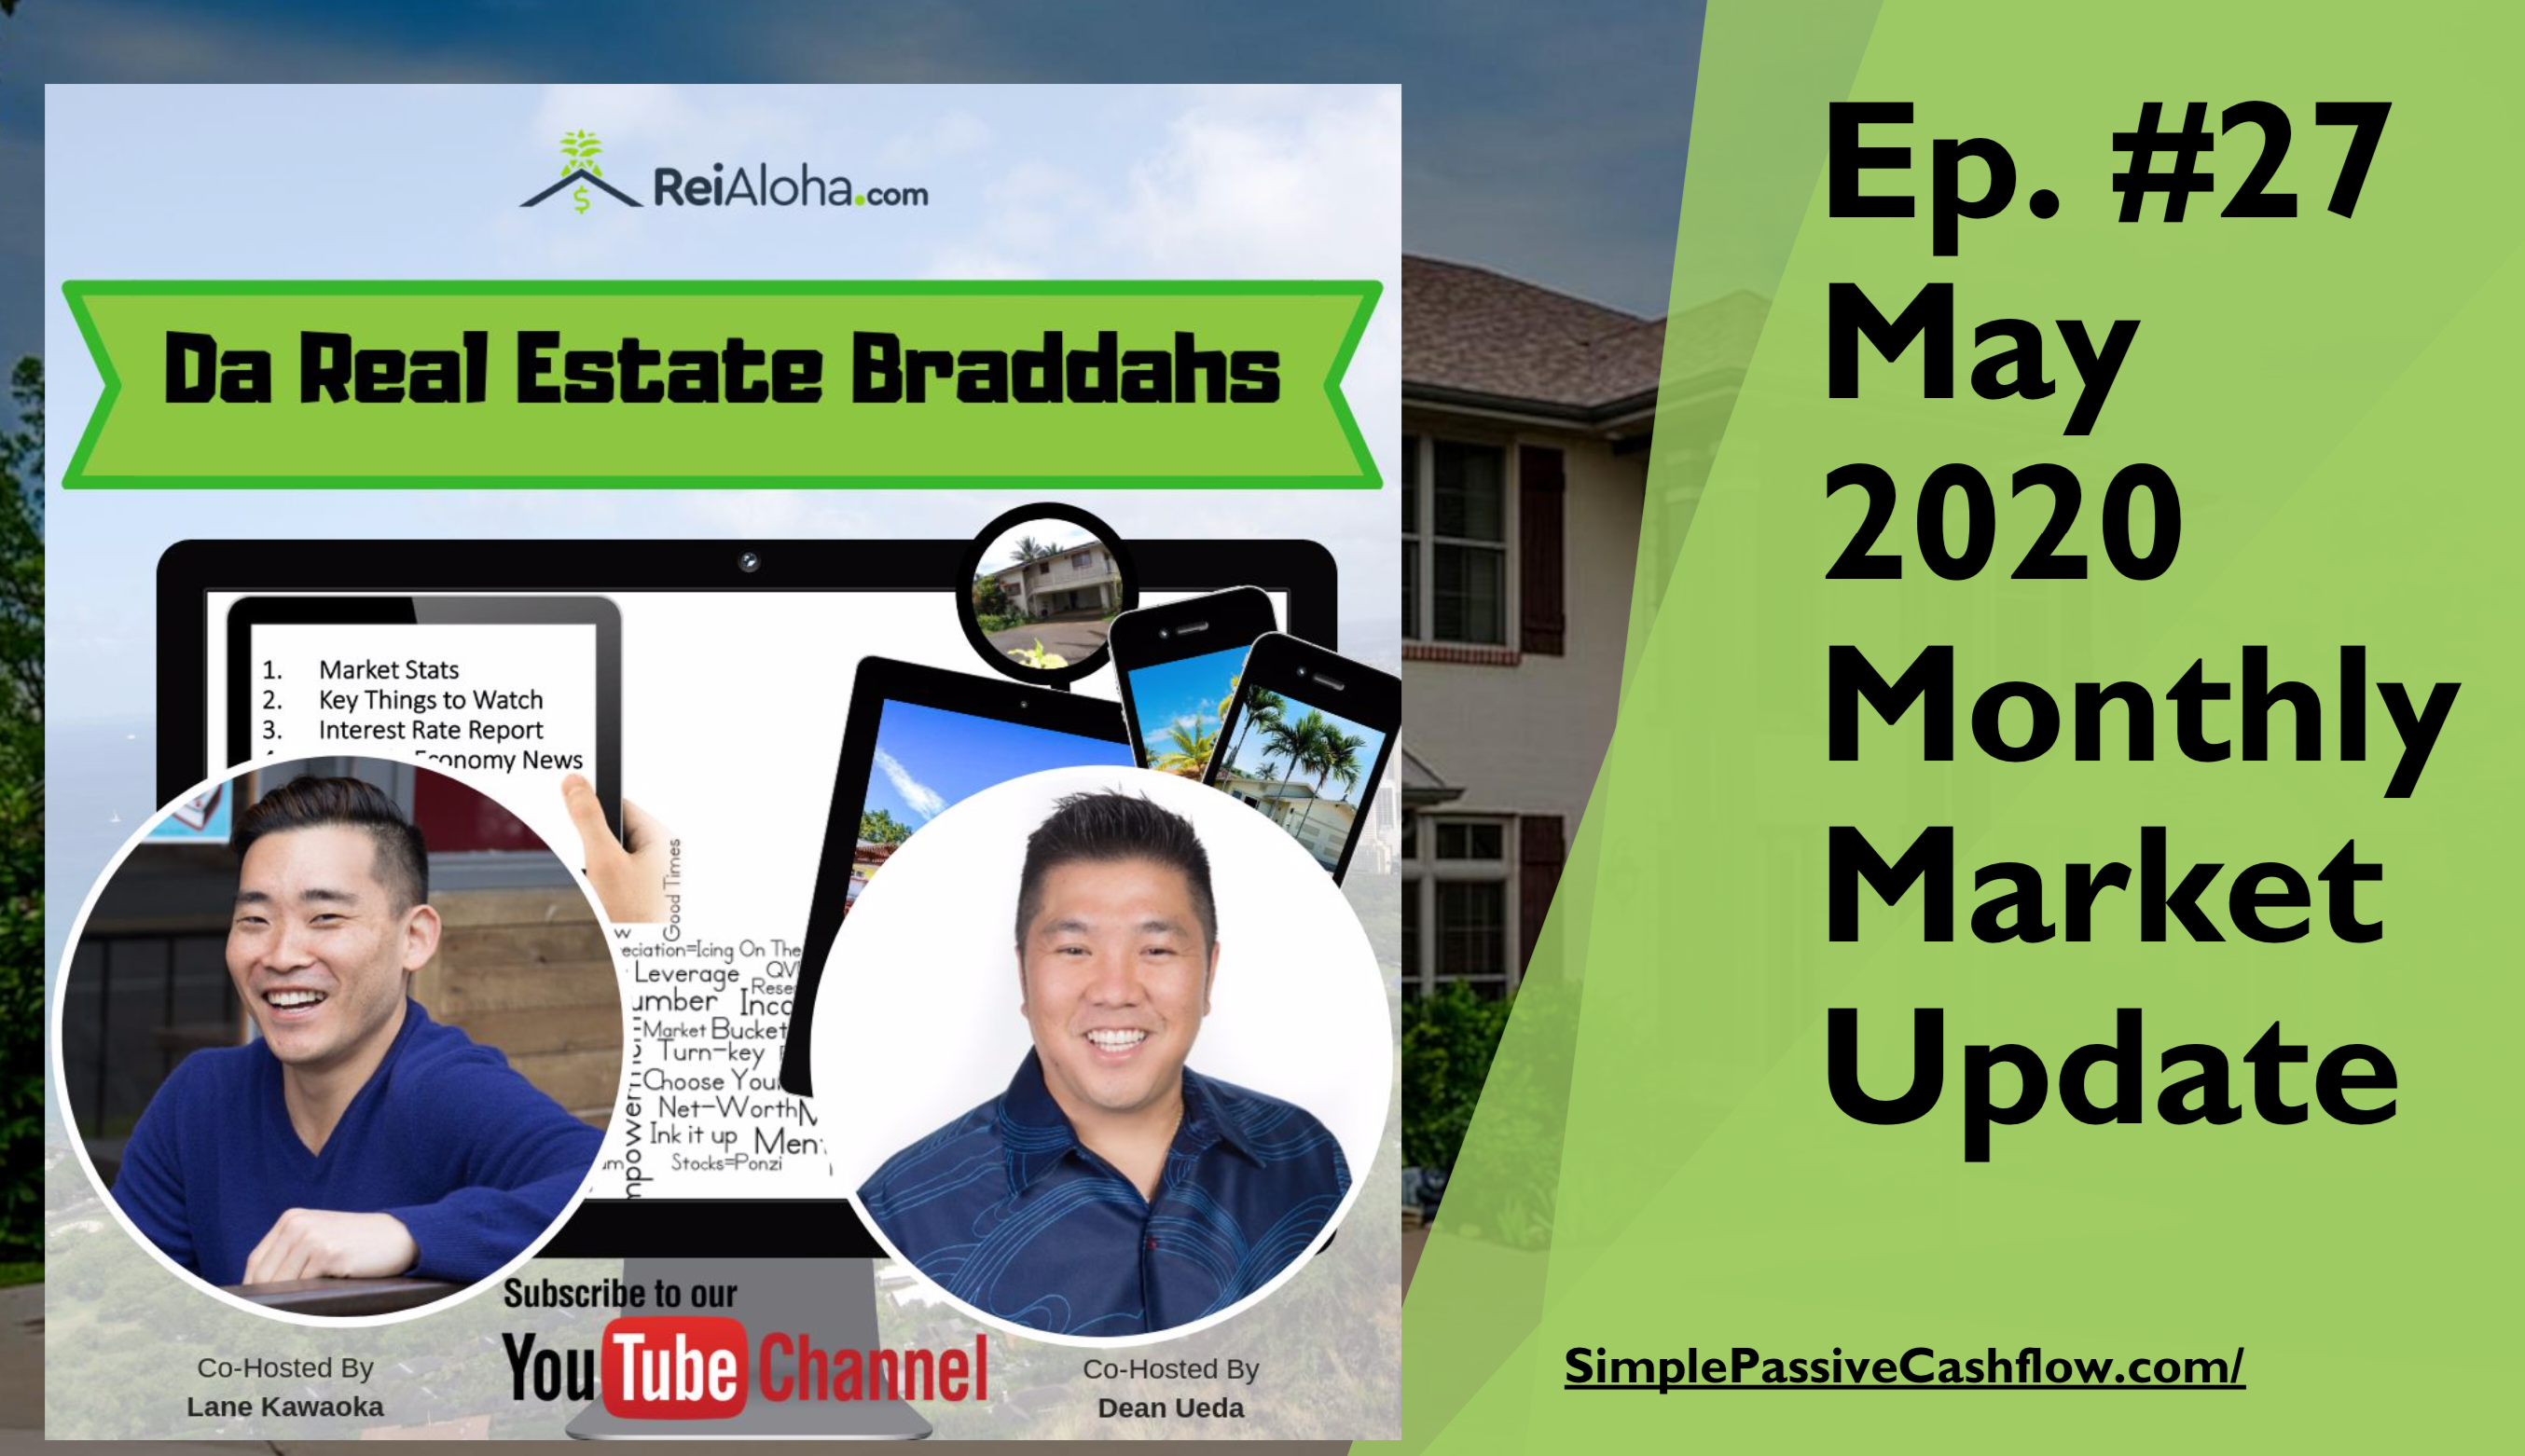 May 2020 – Real Estate Braddahs Ep 27